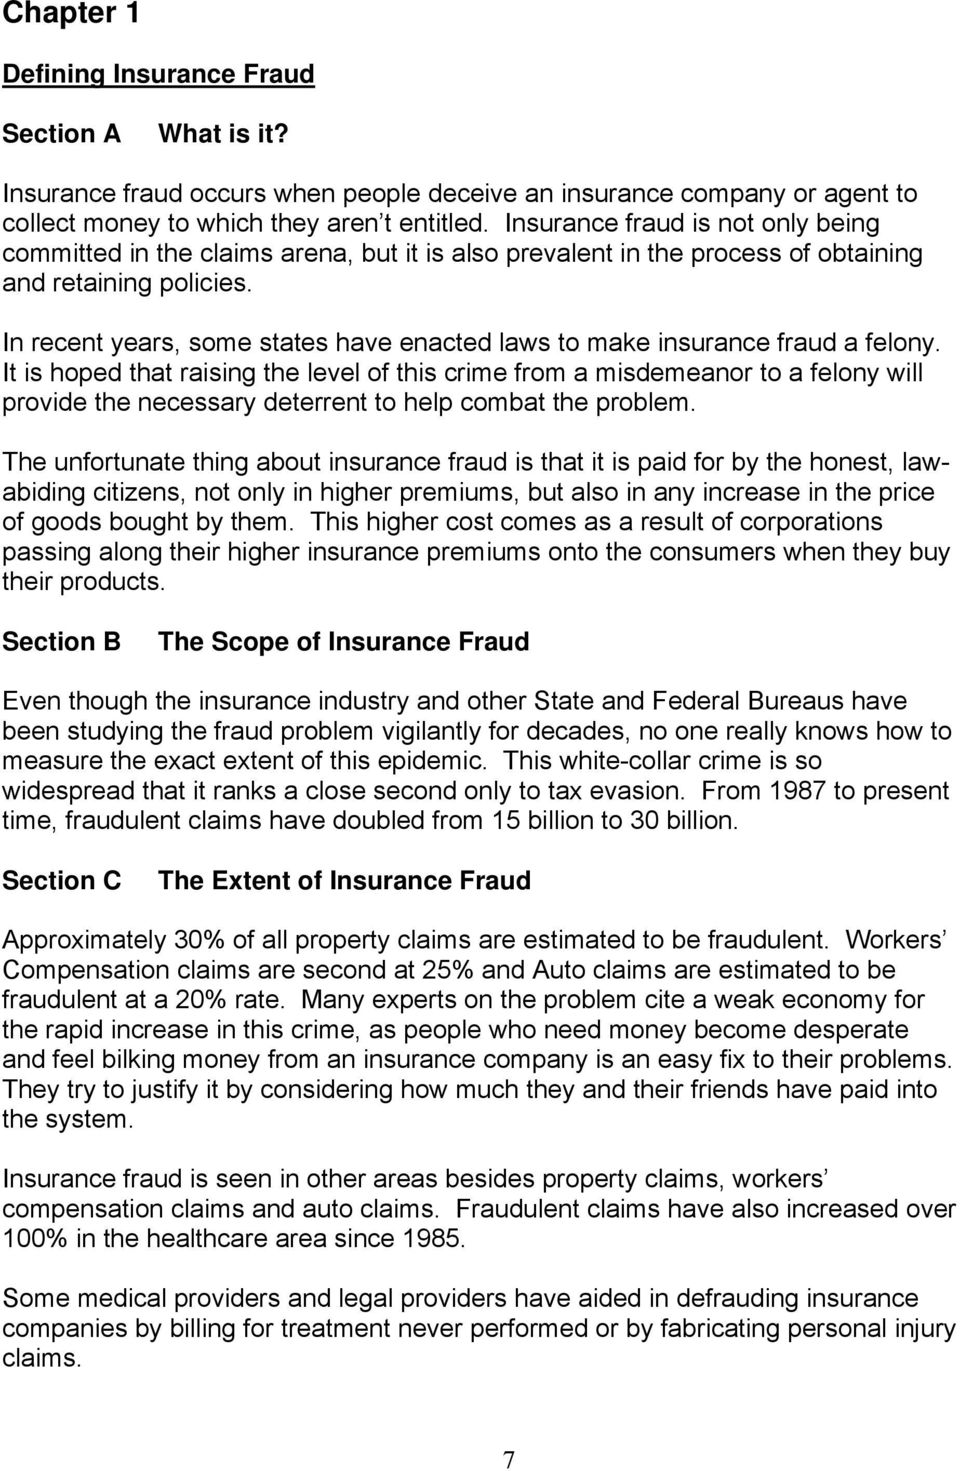 In recent years, some states have enacted laws to make insurance fraud a felony.